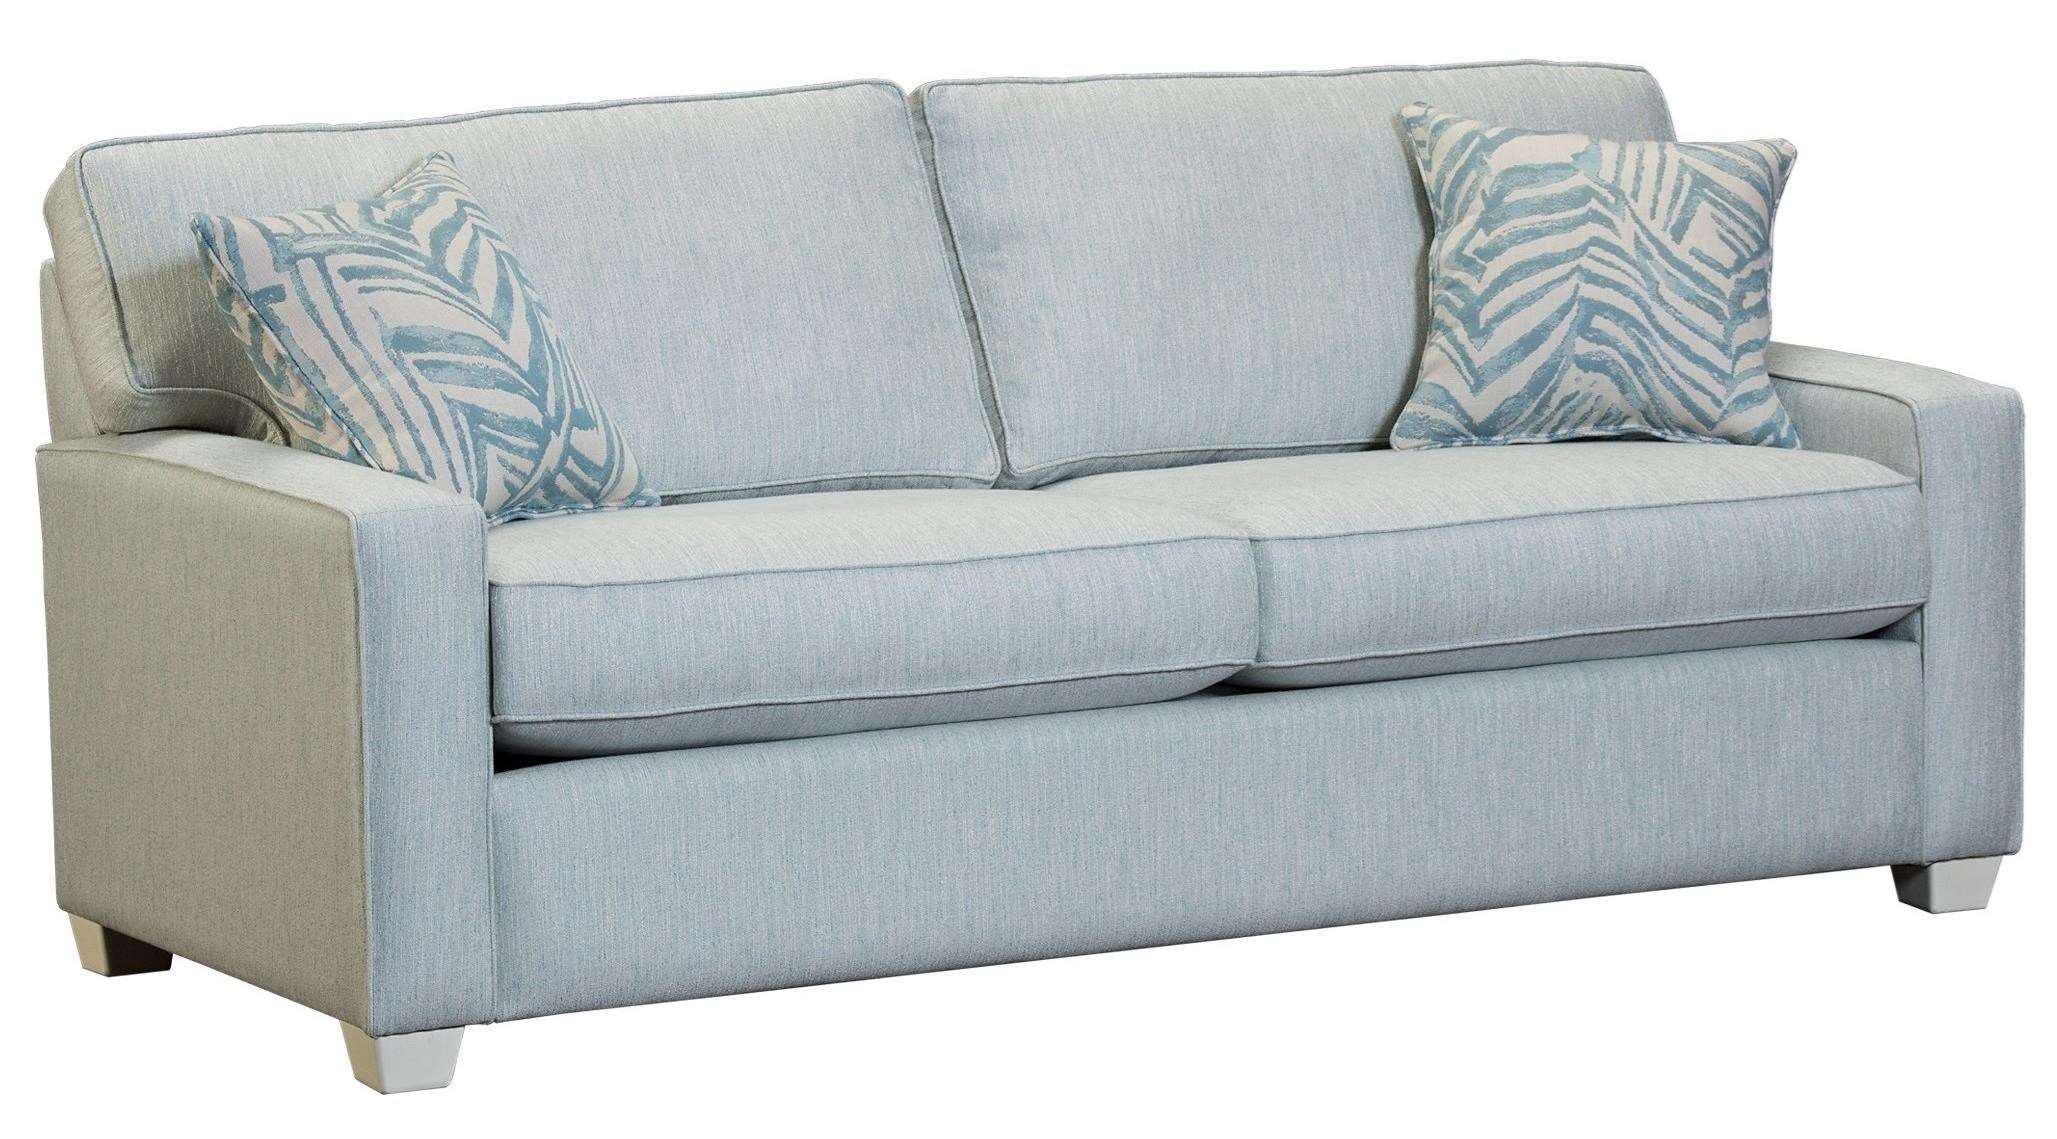 Capris Furniture 146 Contemporary Queen Sleeper Sofa With Cozy Mattress